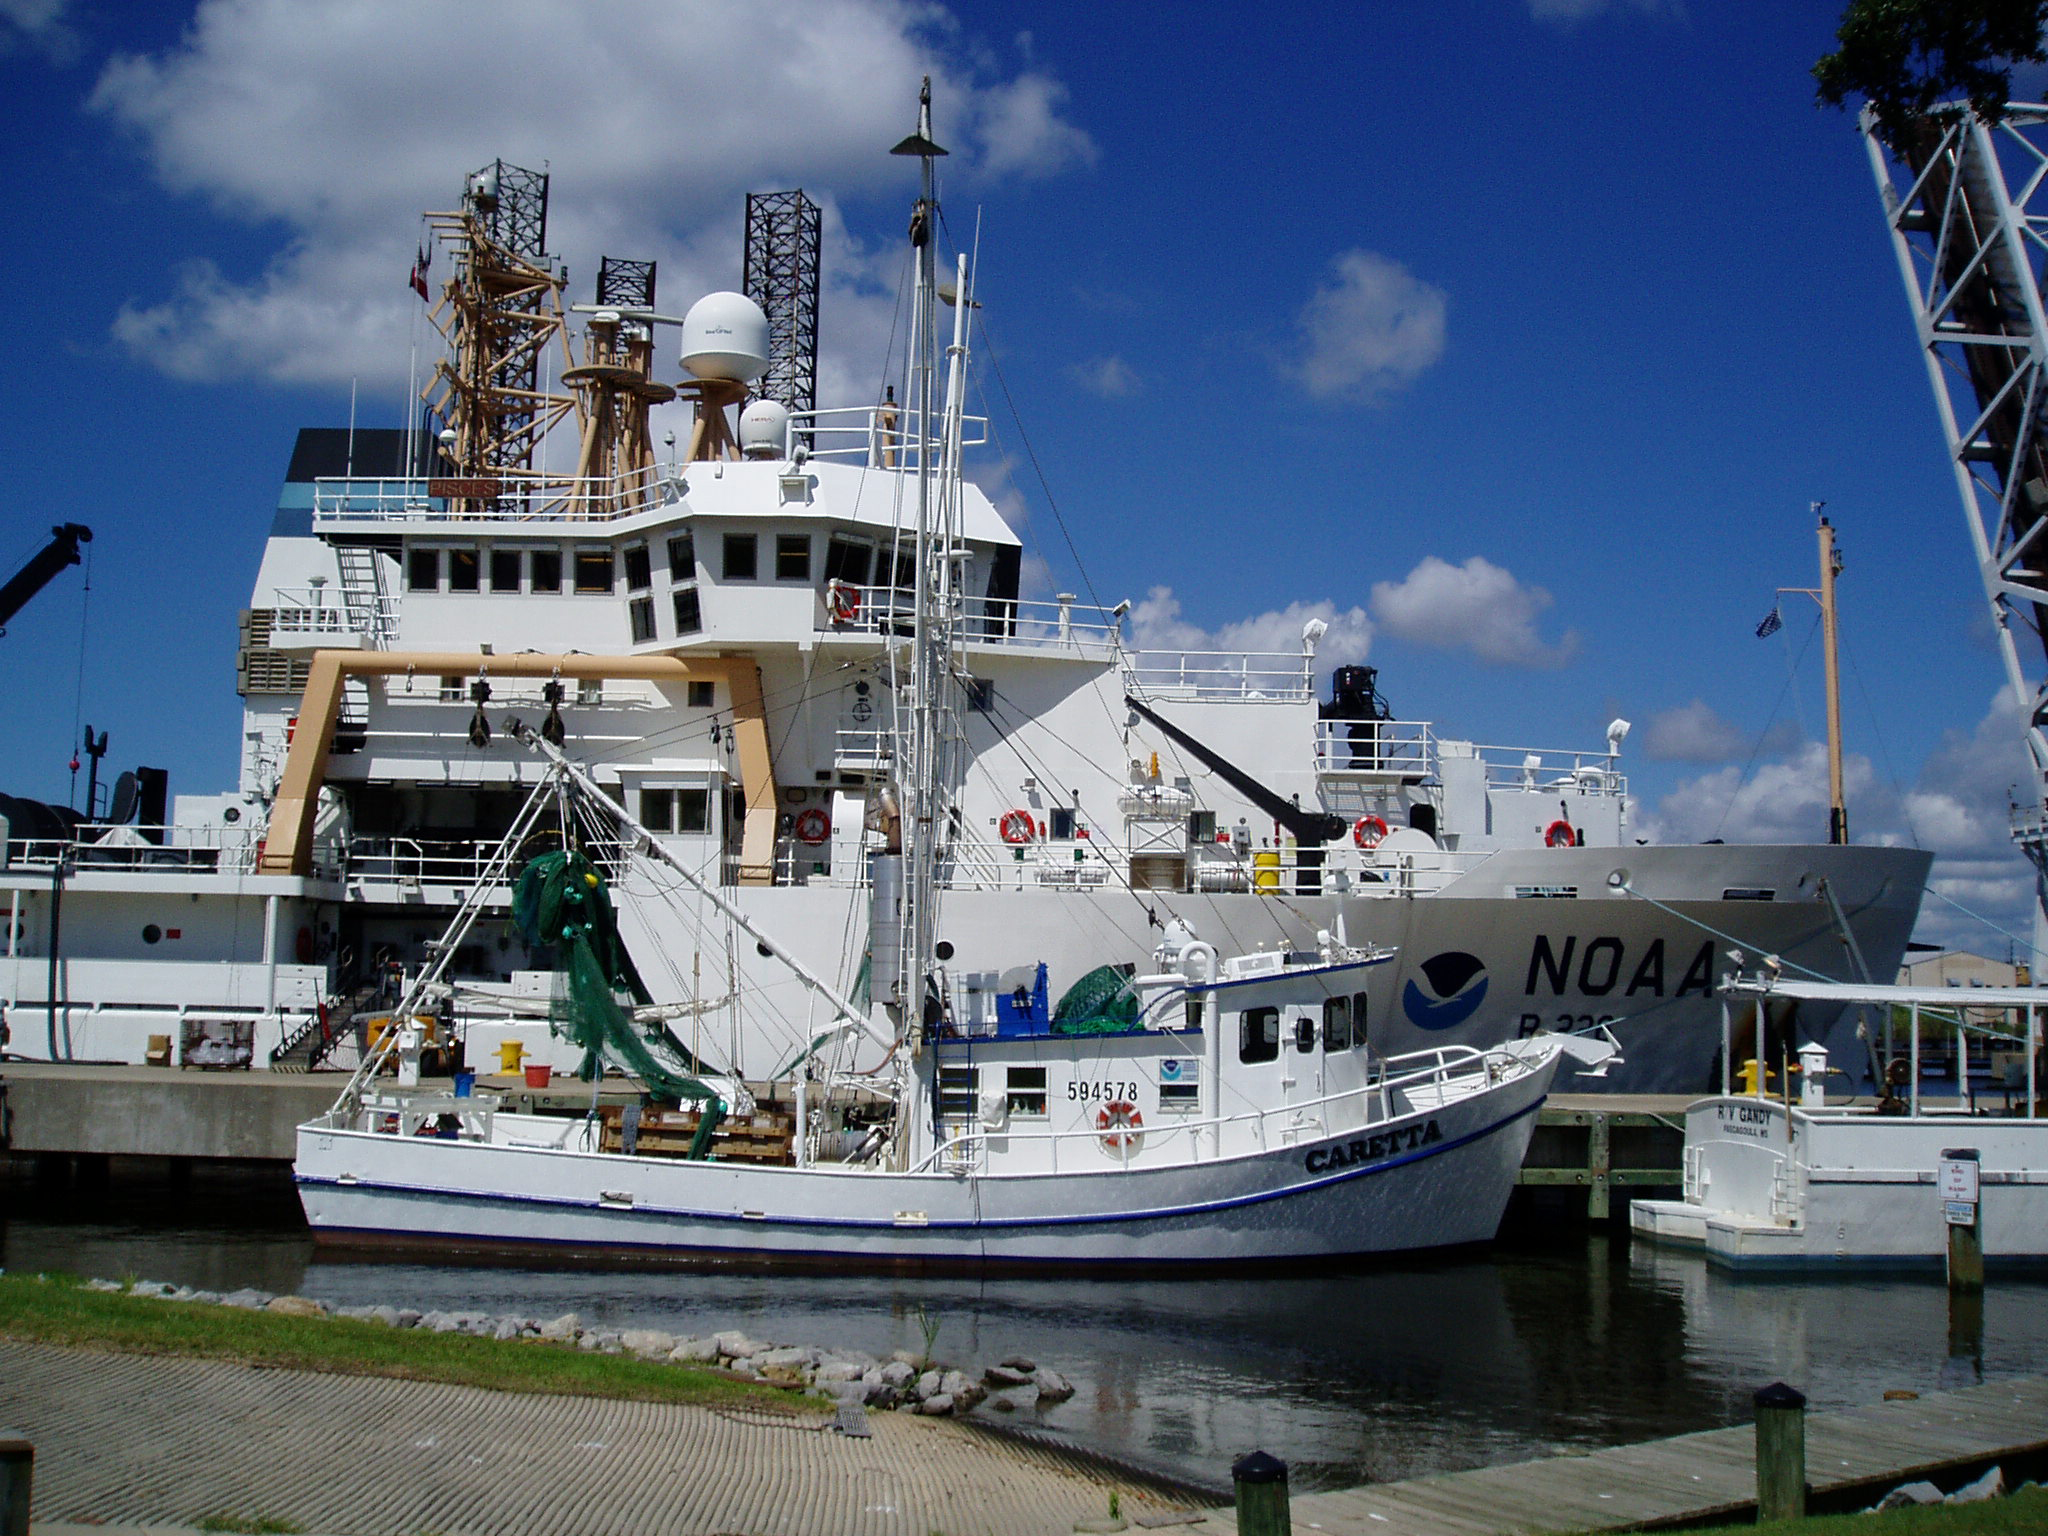 Large multi-level ship, top festooned with scientific instruments, at dock; with a smaller boat docked alongside.